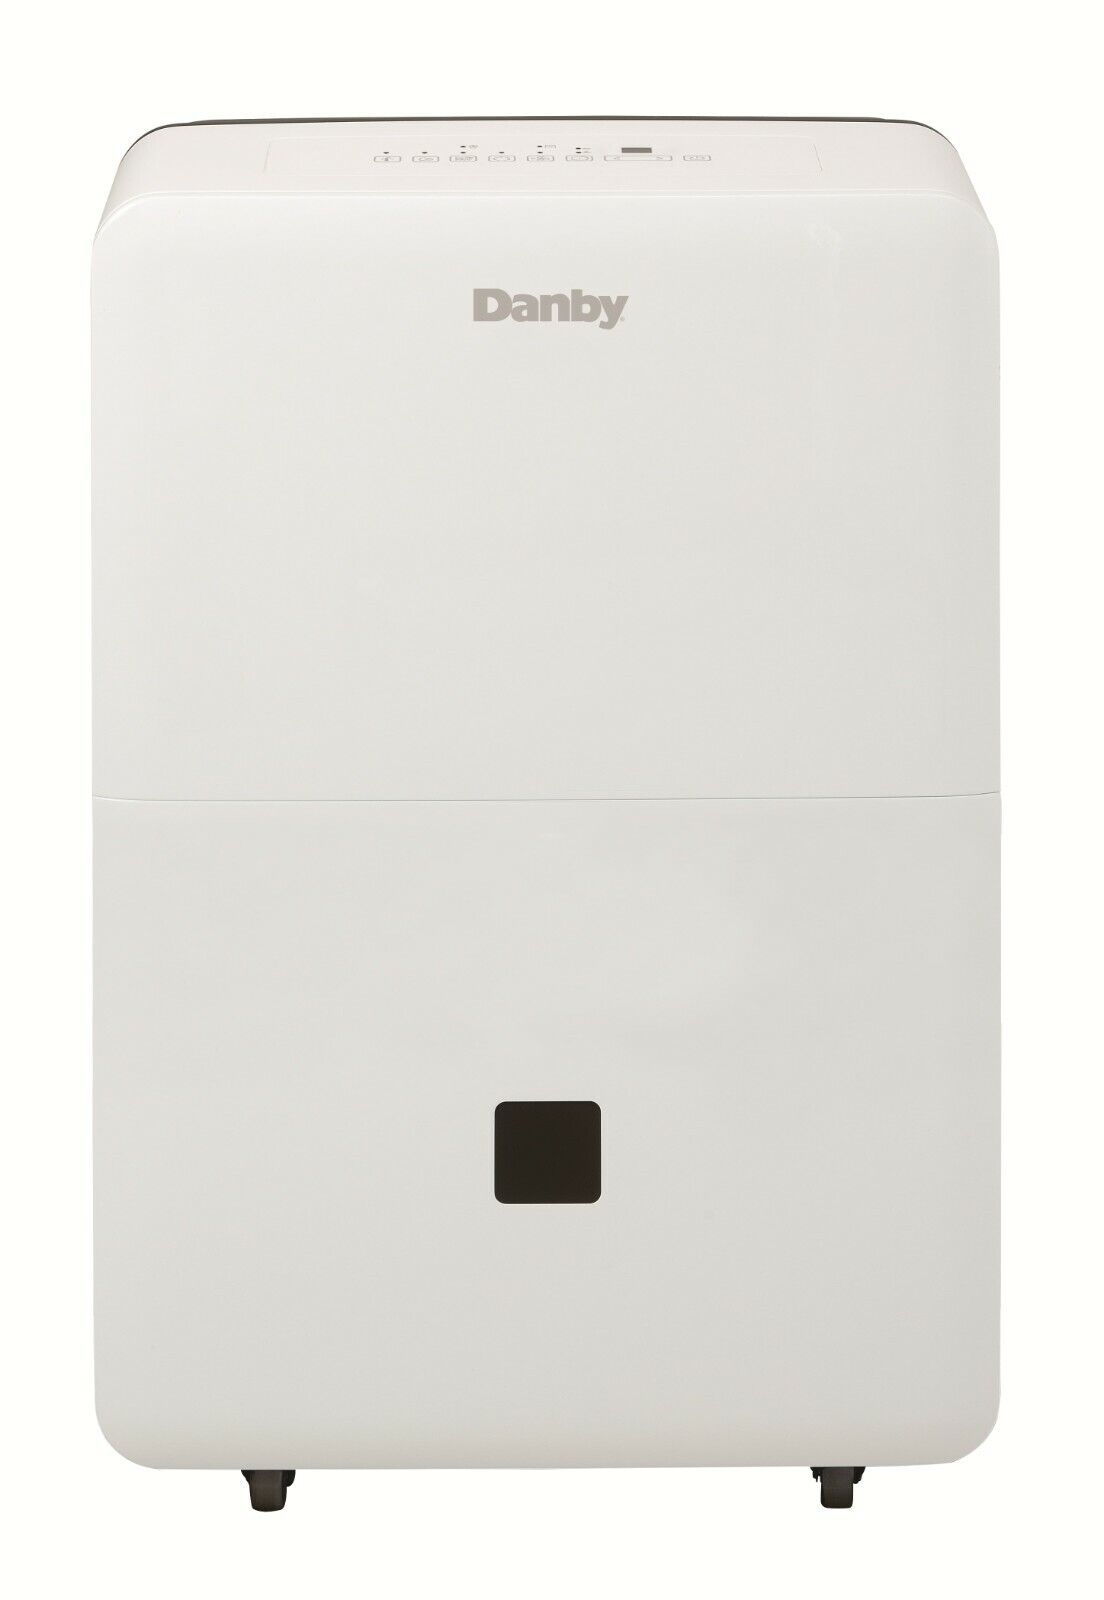 Danby 50 Pint Dehumidifier with Pump DDR050BJPWDB